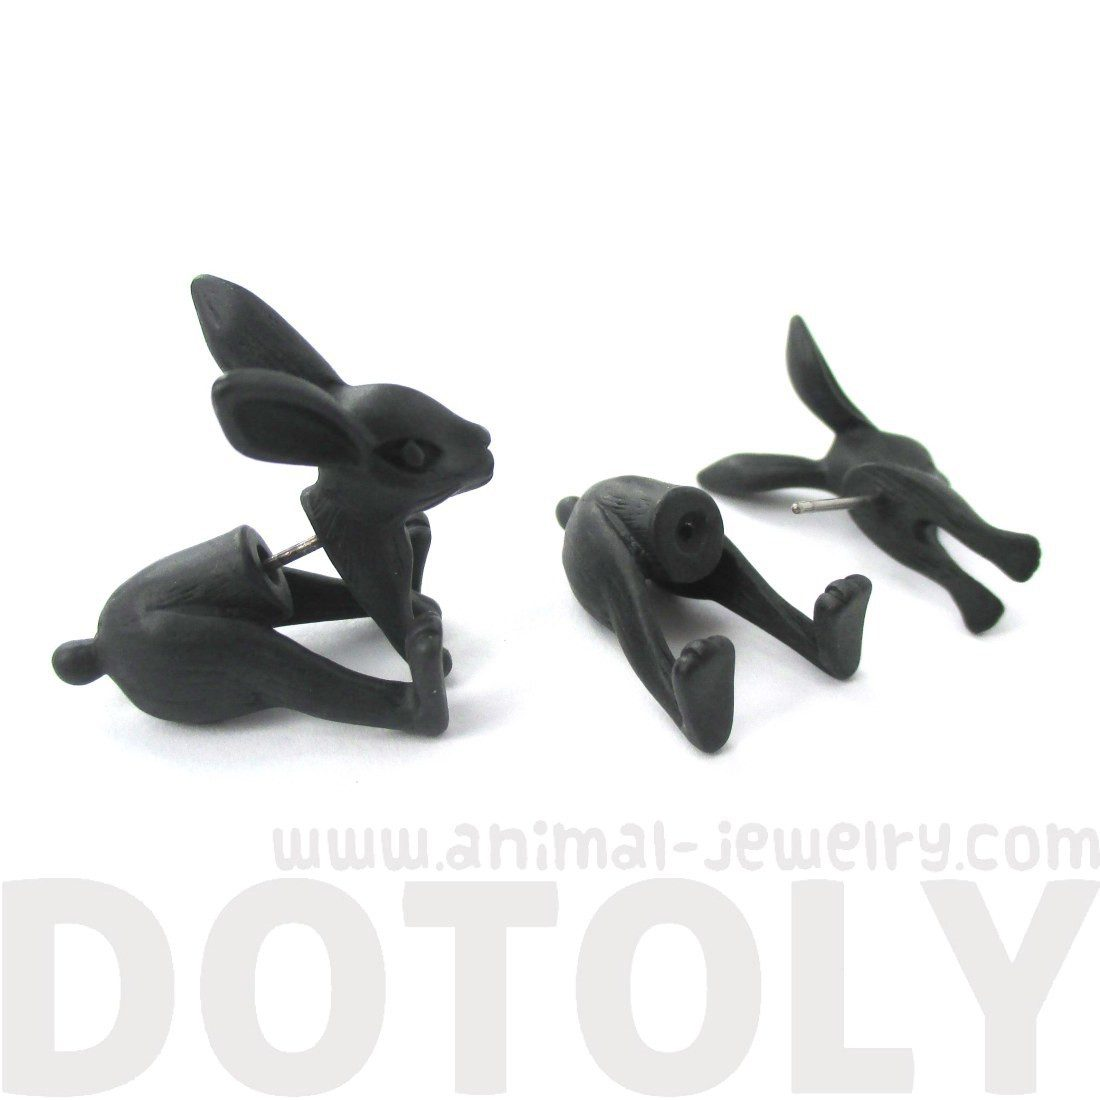 Realistic Bunny Rabbit Shaped Plug Fake Gauge Stud Earrings in Black